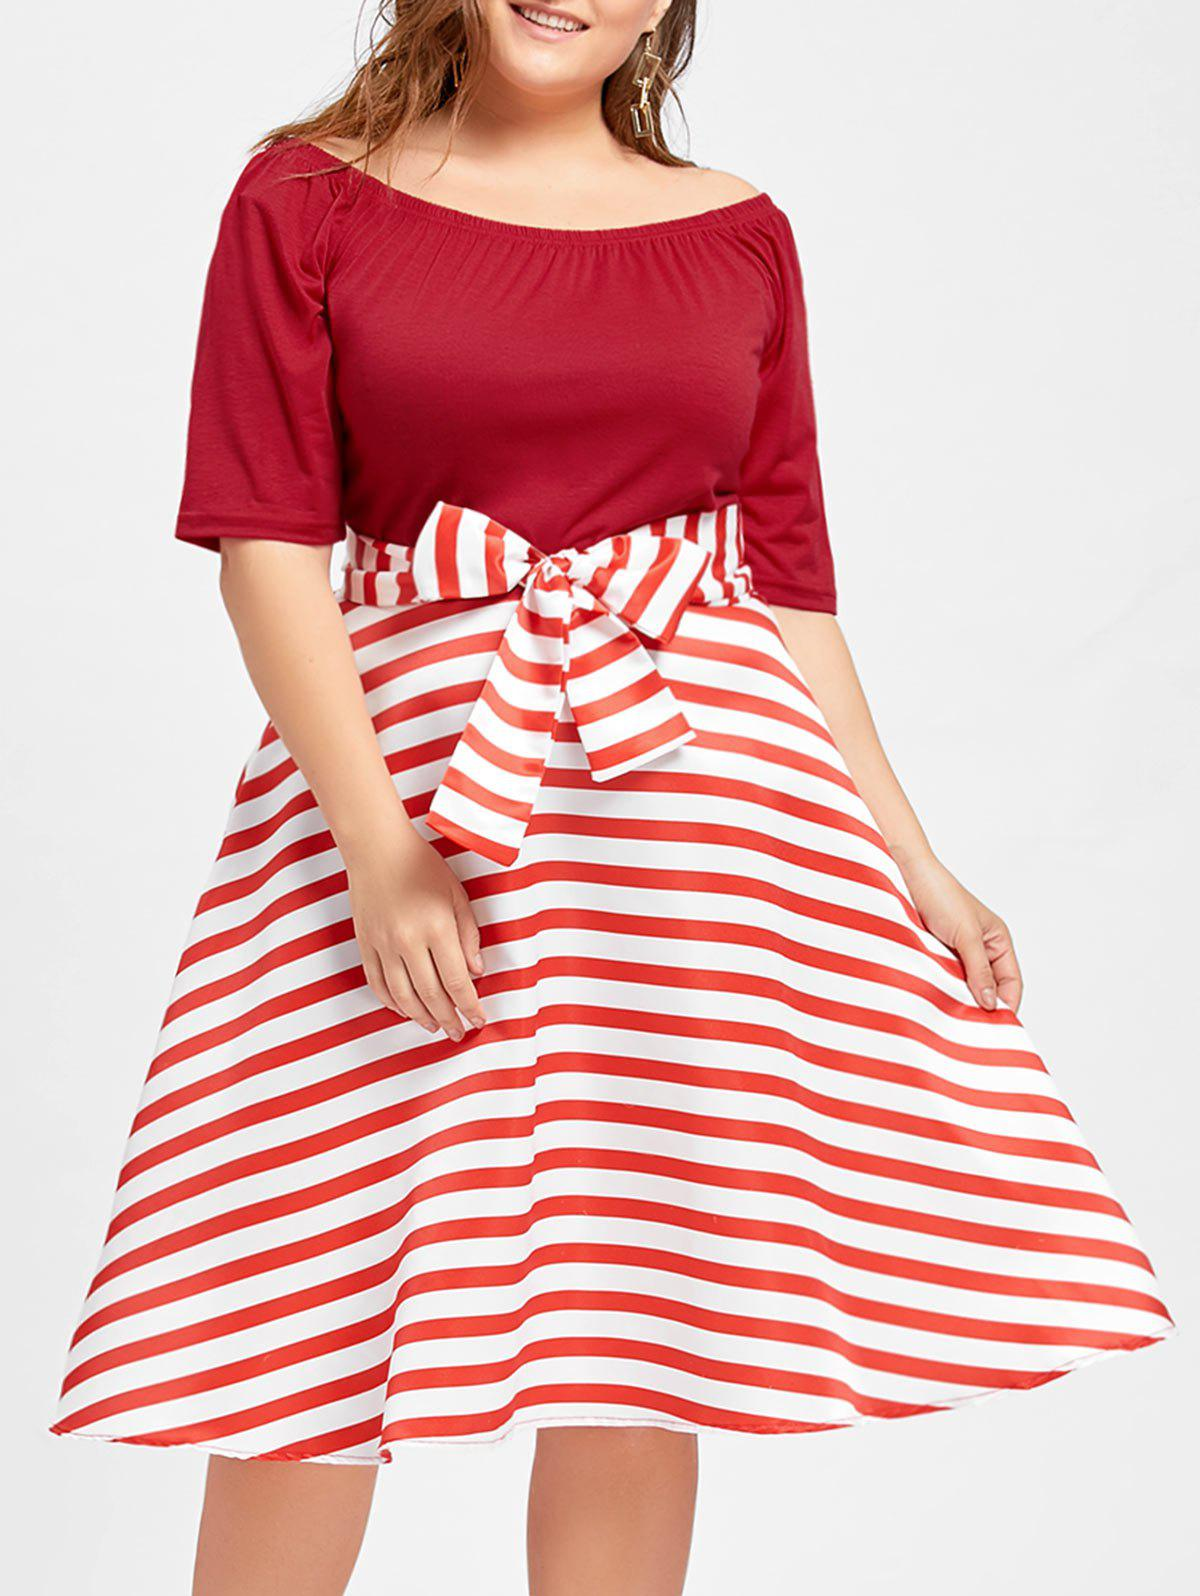 24% OFF] Stripe Plus Size Christmas Party Knee Length Dress | Rosegal